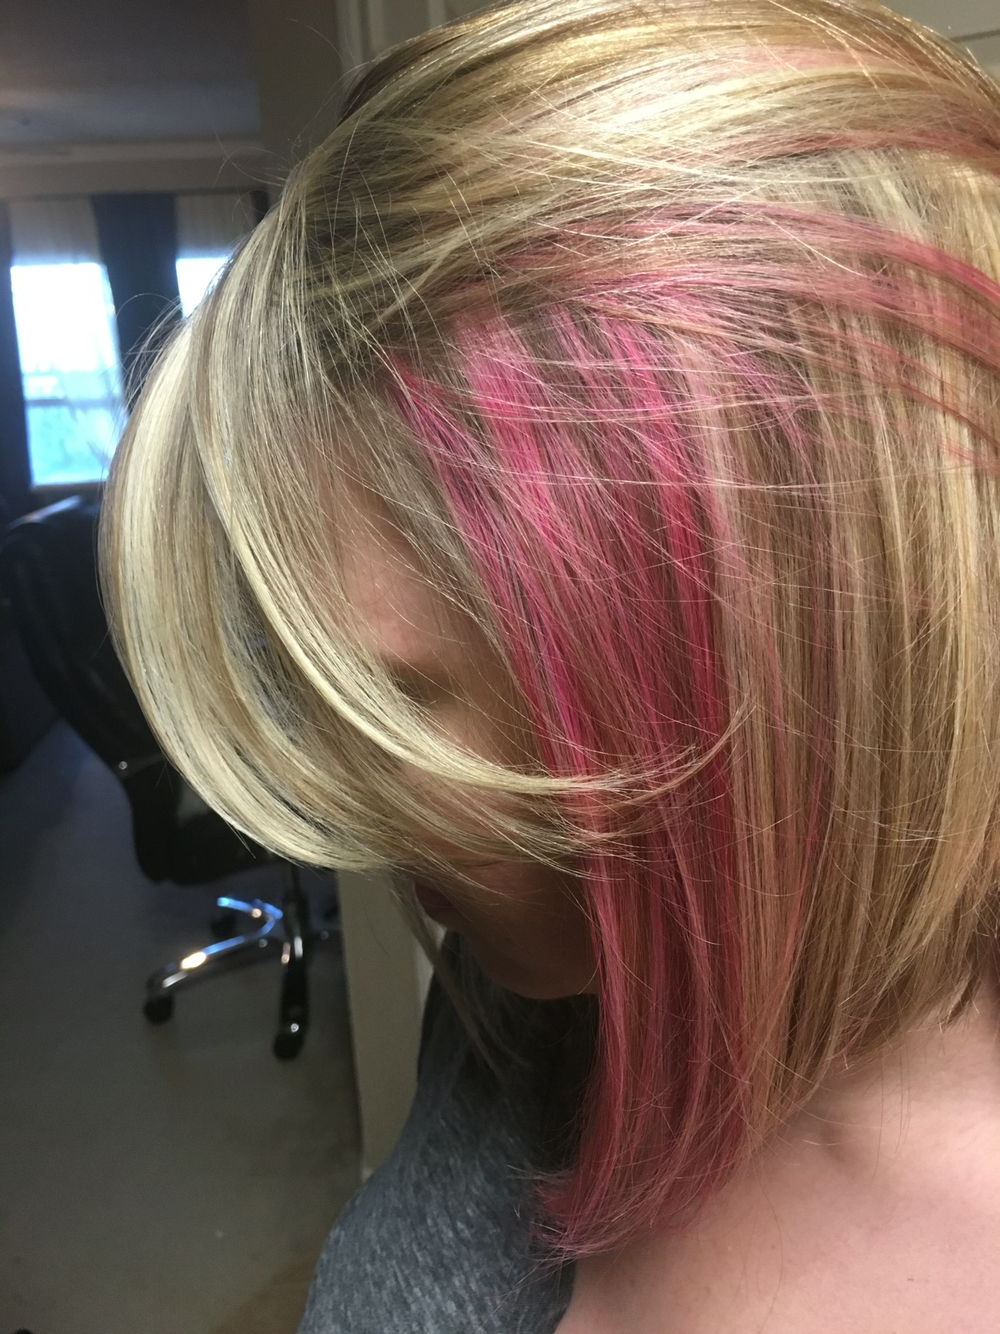 Blonde With Peekaboo Pink | Nails/hair/makeup In 2018 | Pinterest With Extreme Angled Bob Haircuts With Pink Peek A Boos (View 2 of 20)